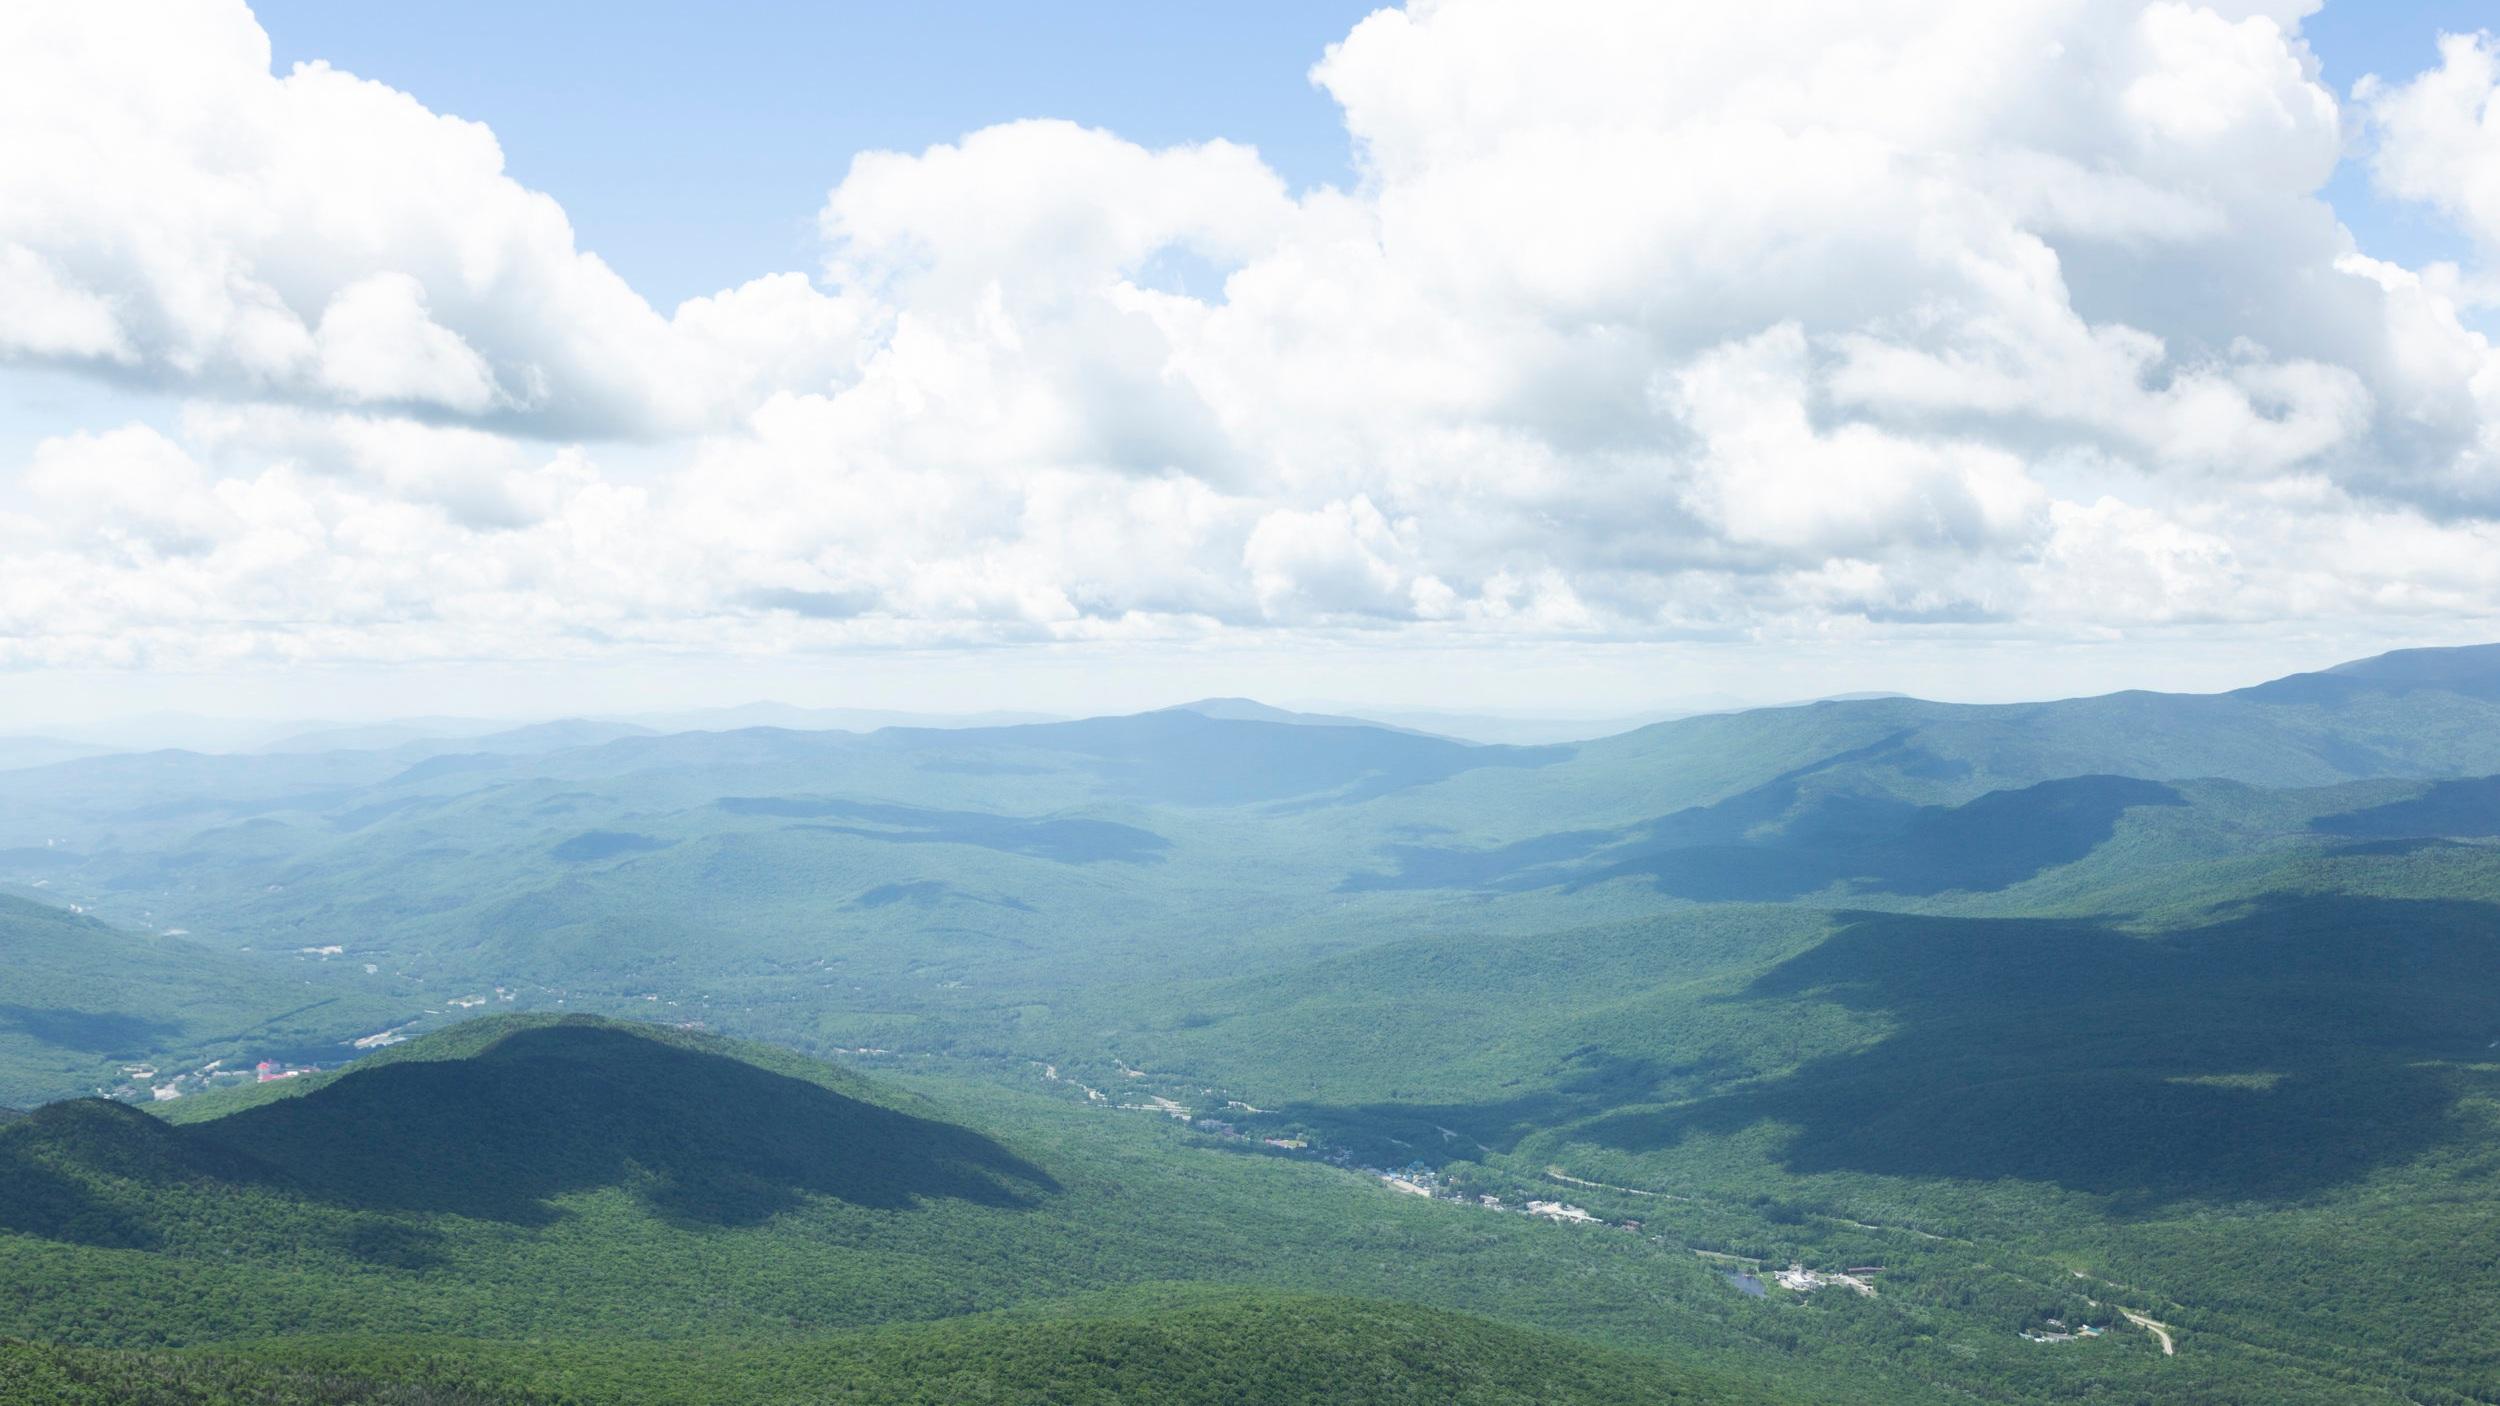 Let's Burgeon - Our company is bringing manufacturing back to mountain communities while donating a percentage of each sale directly to supporting environmental efforts in towns like Lincoln, New Hampshire.